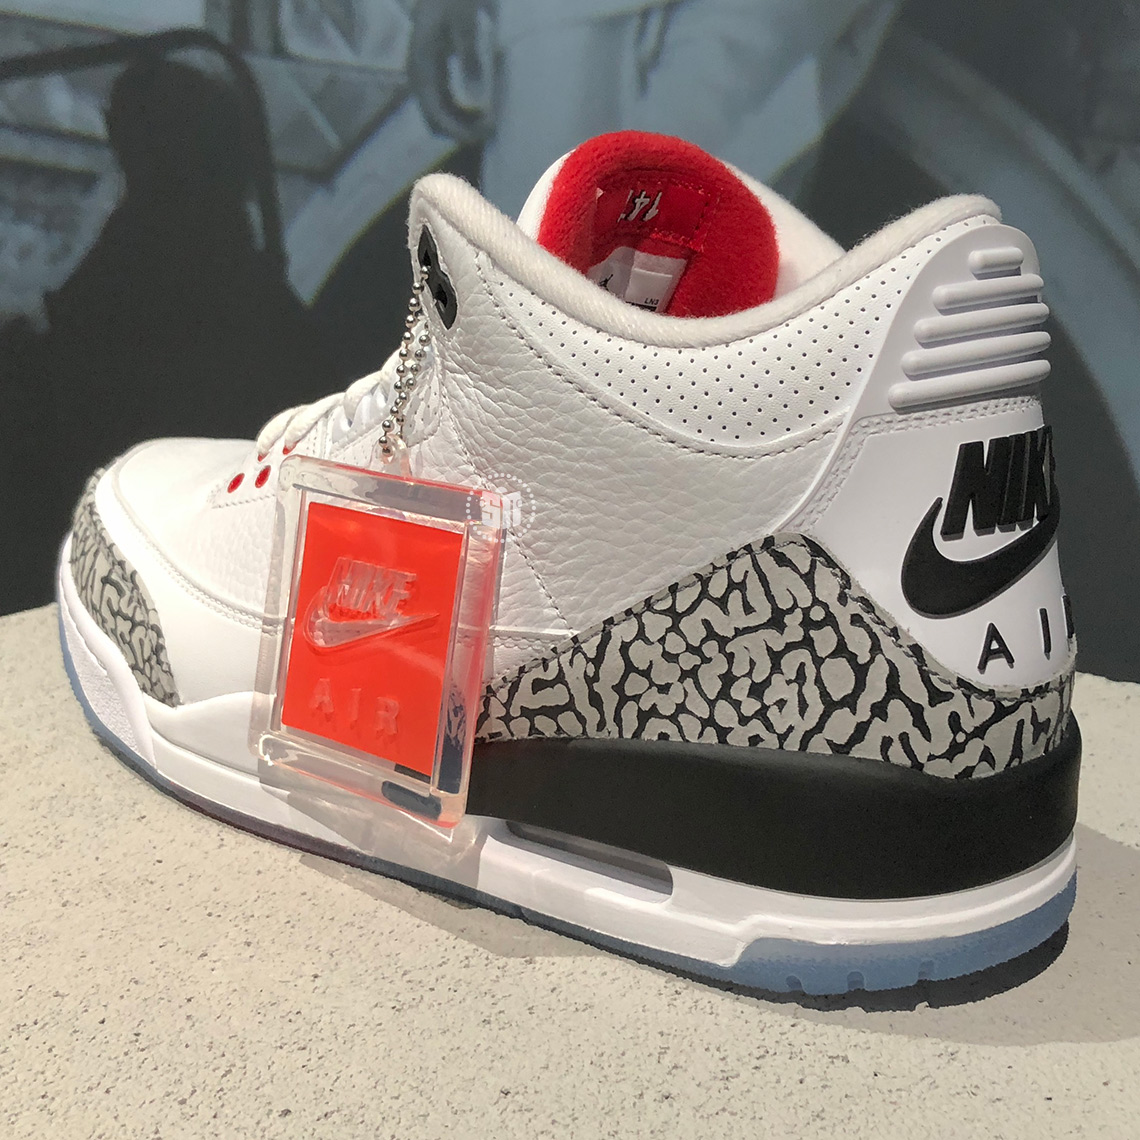 Air Jordan 3 Clear Sole Dunk Contest White Cement First Look ... 5dce2c6a0